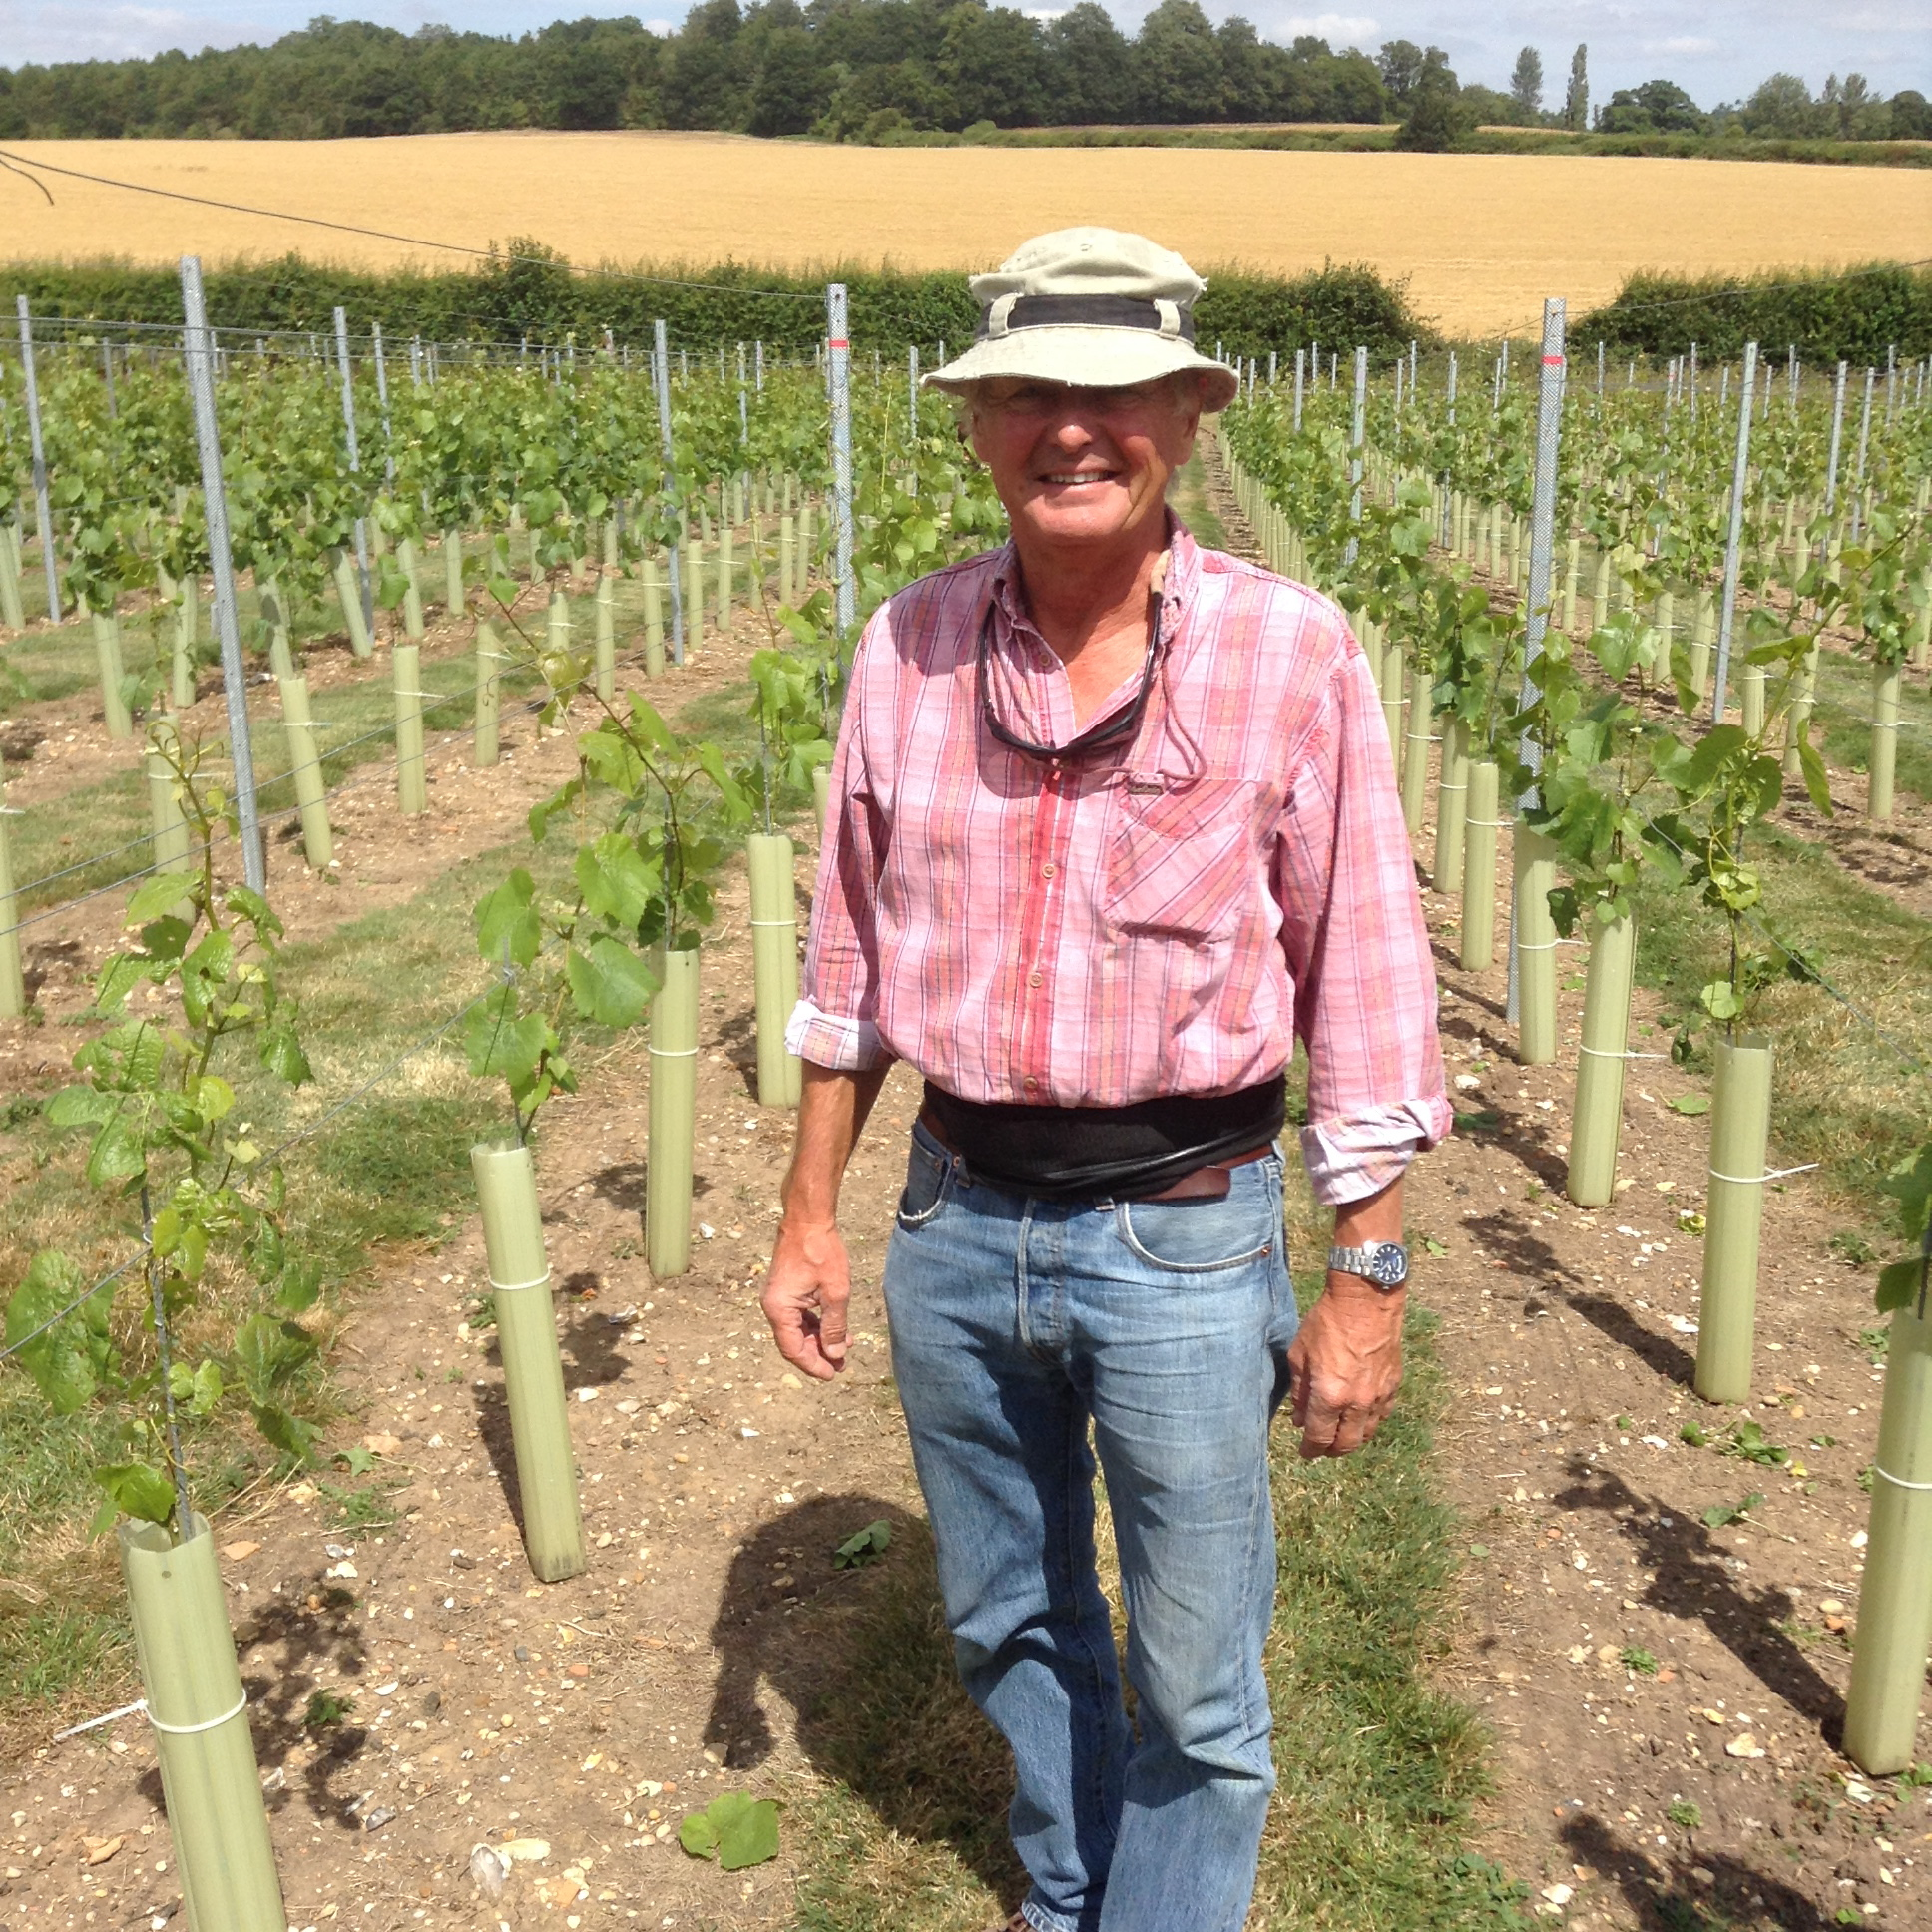 7  Robert in the vineyard 2.JPG